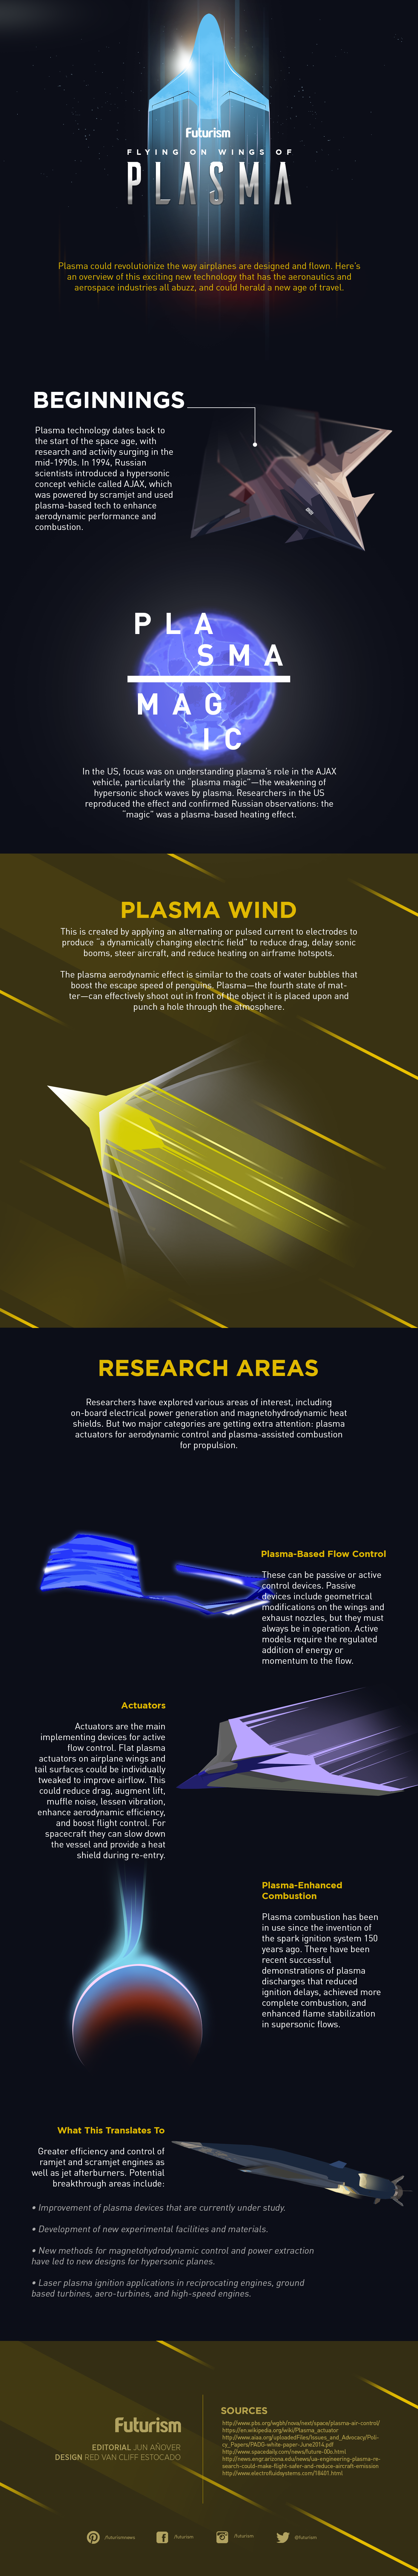 The Future of Flying- Developments in Plasma Technology - Infographic